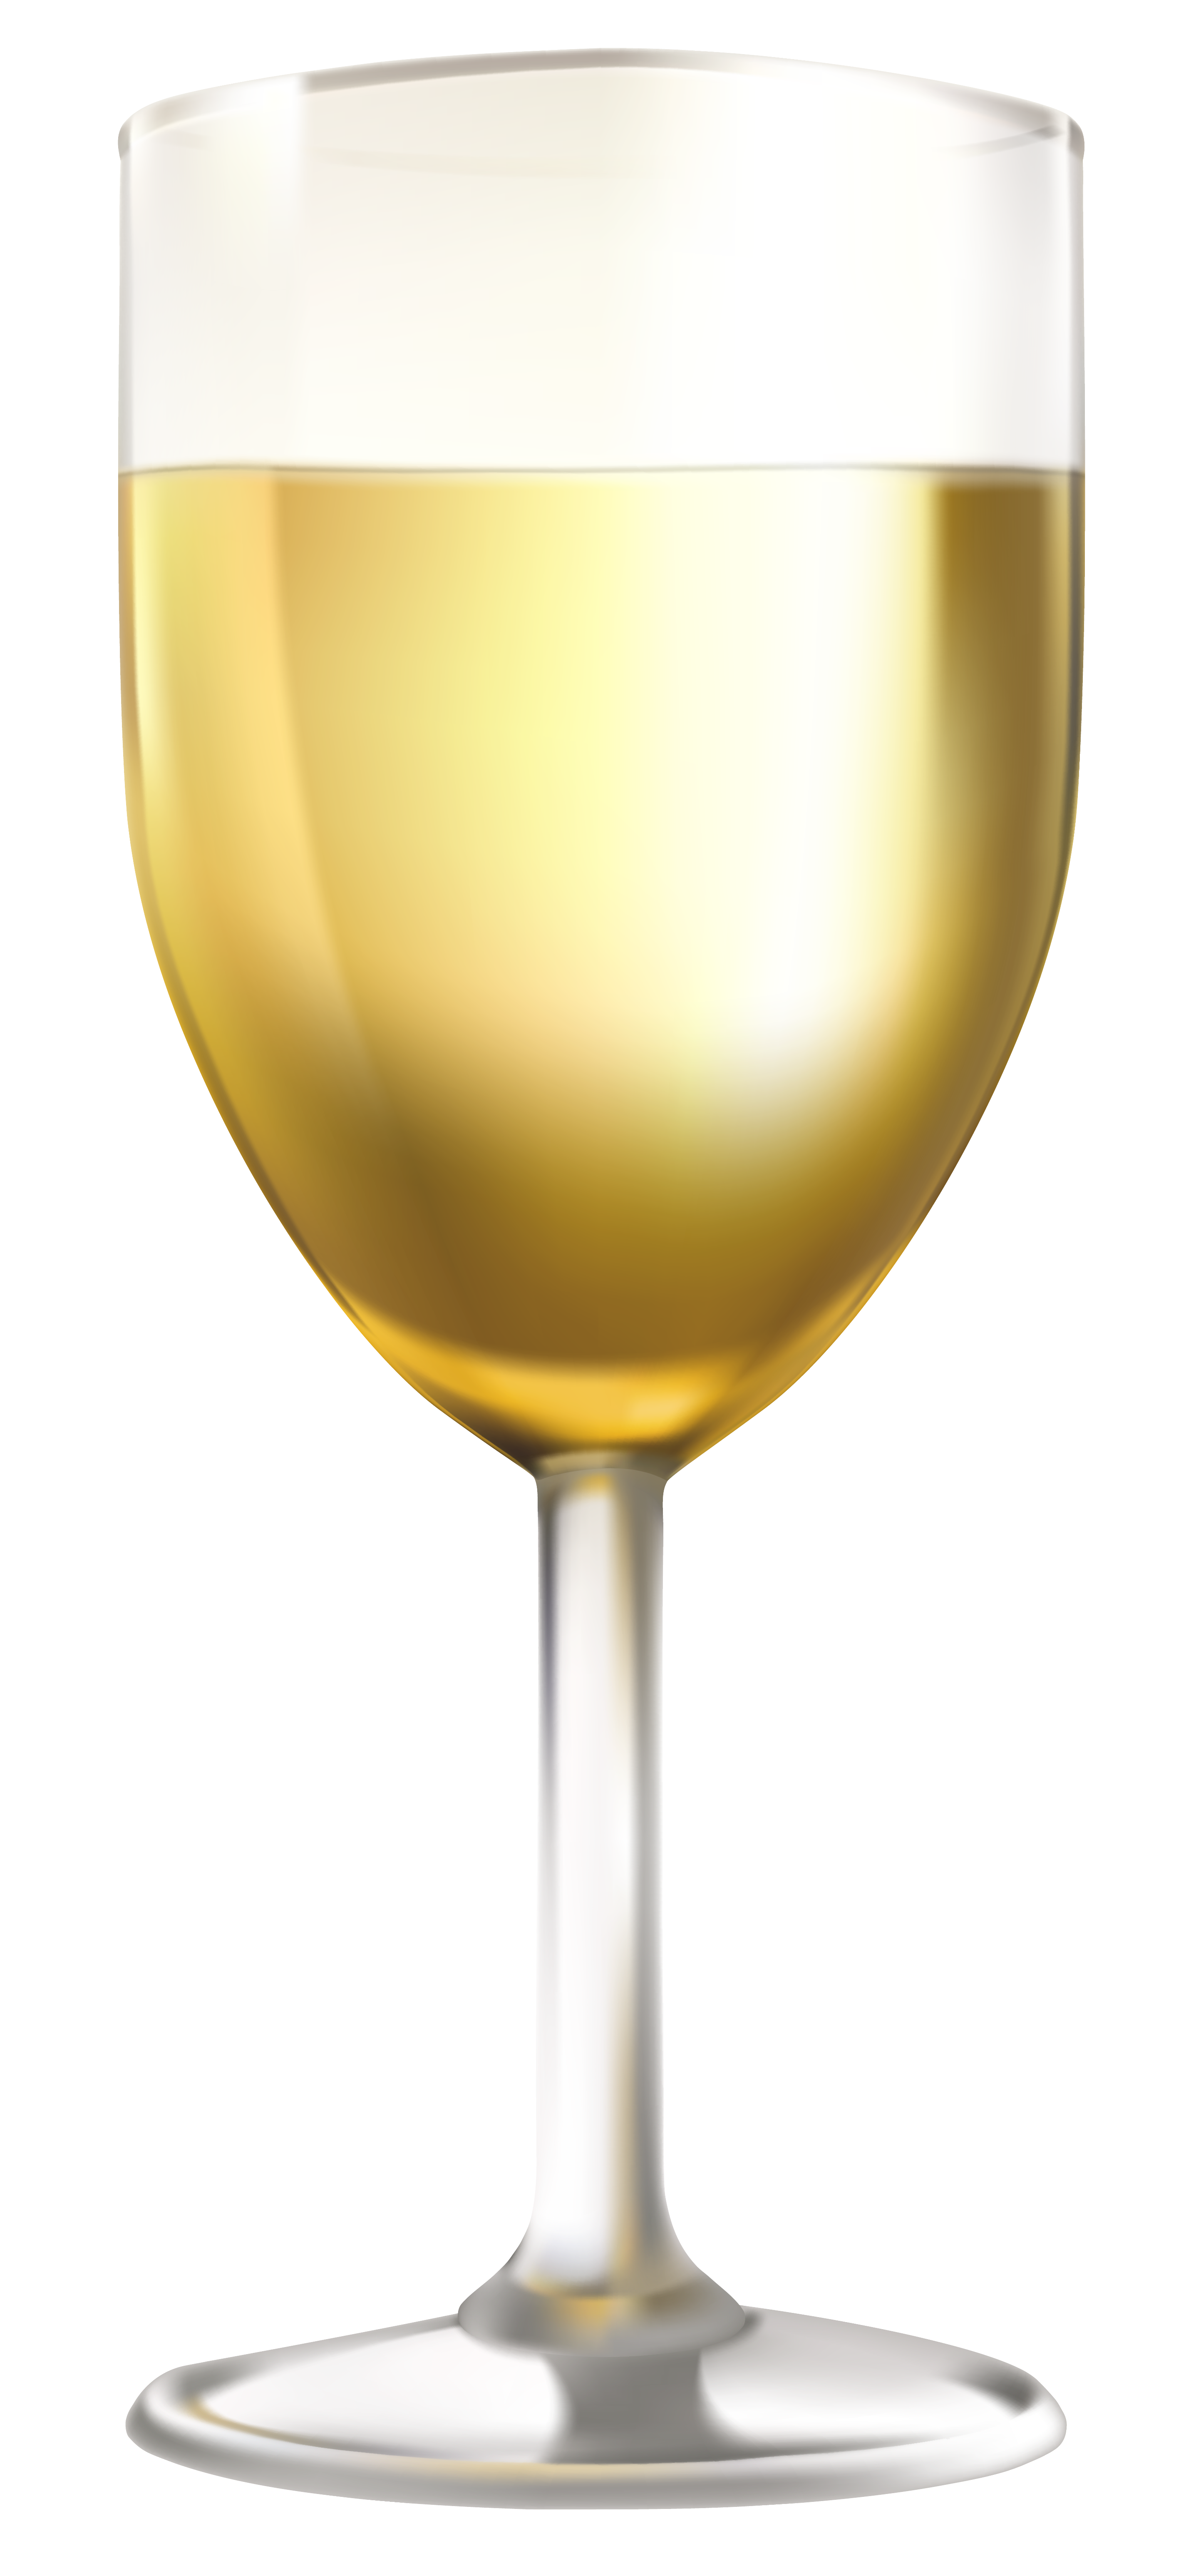 Wine glass clipart png. White clip art image